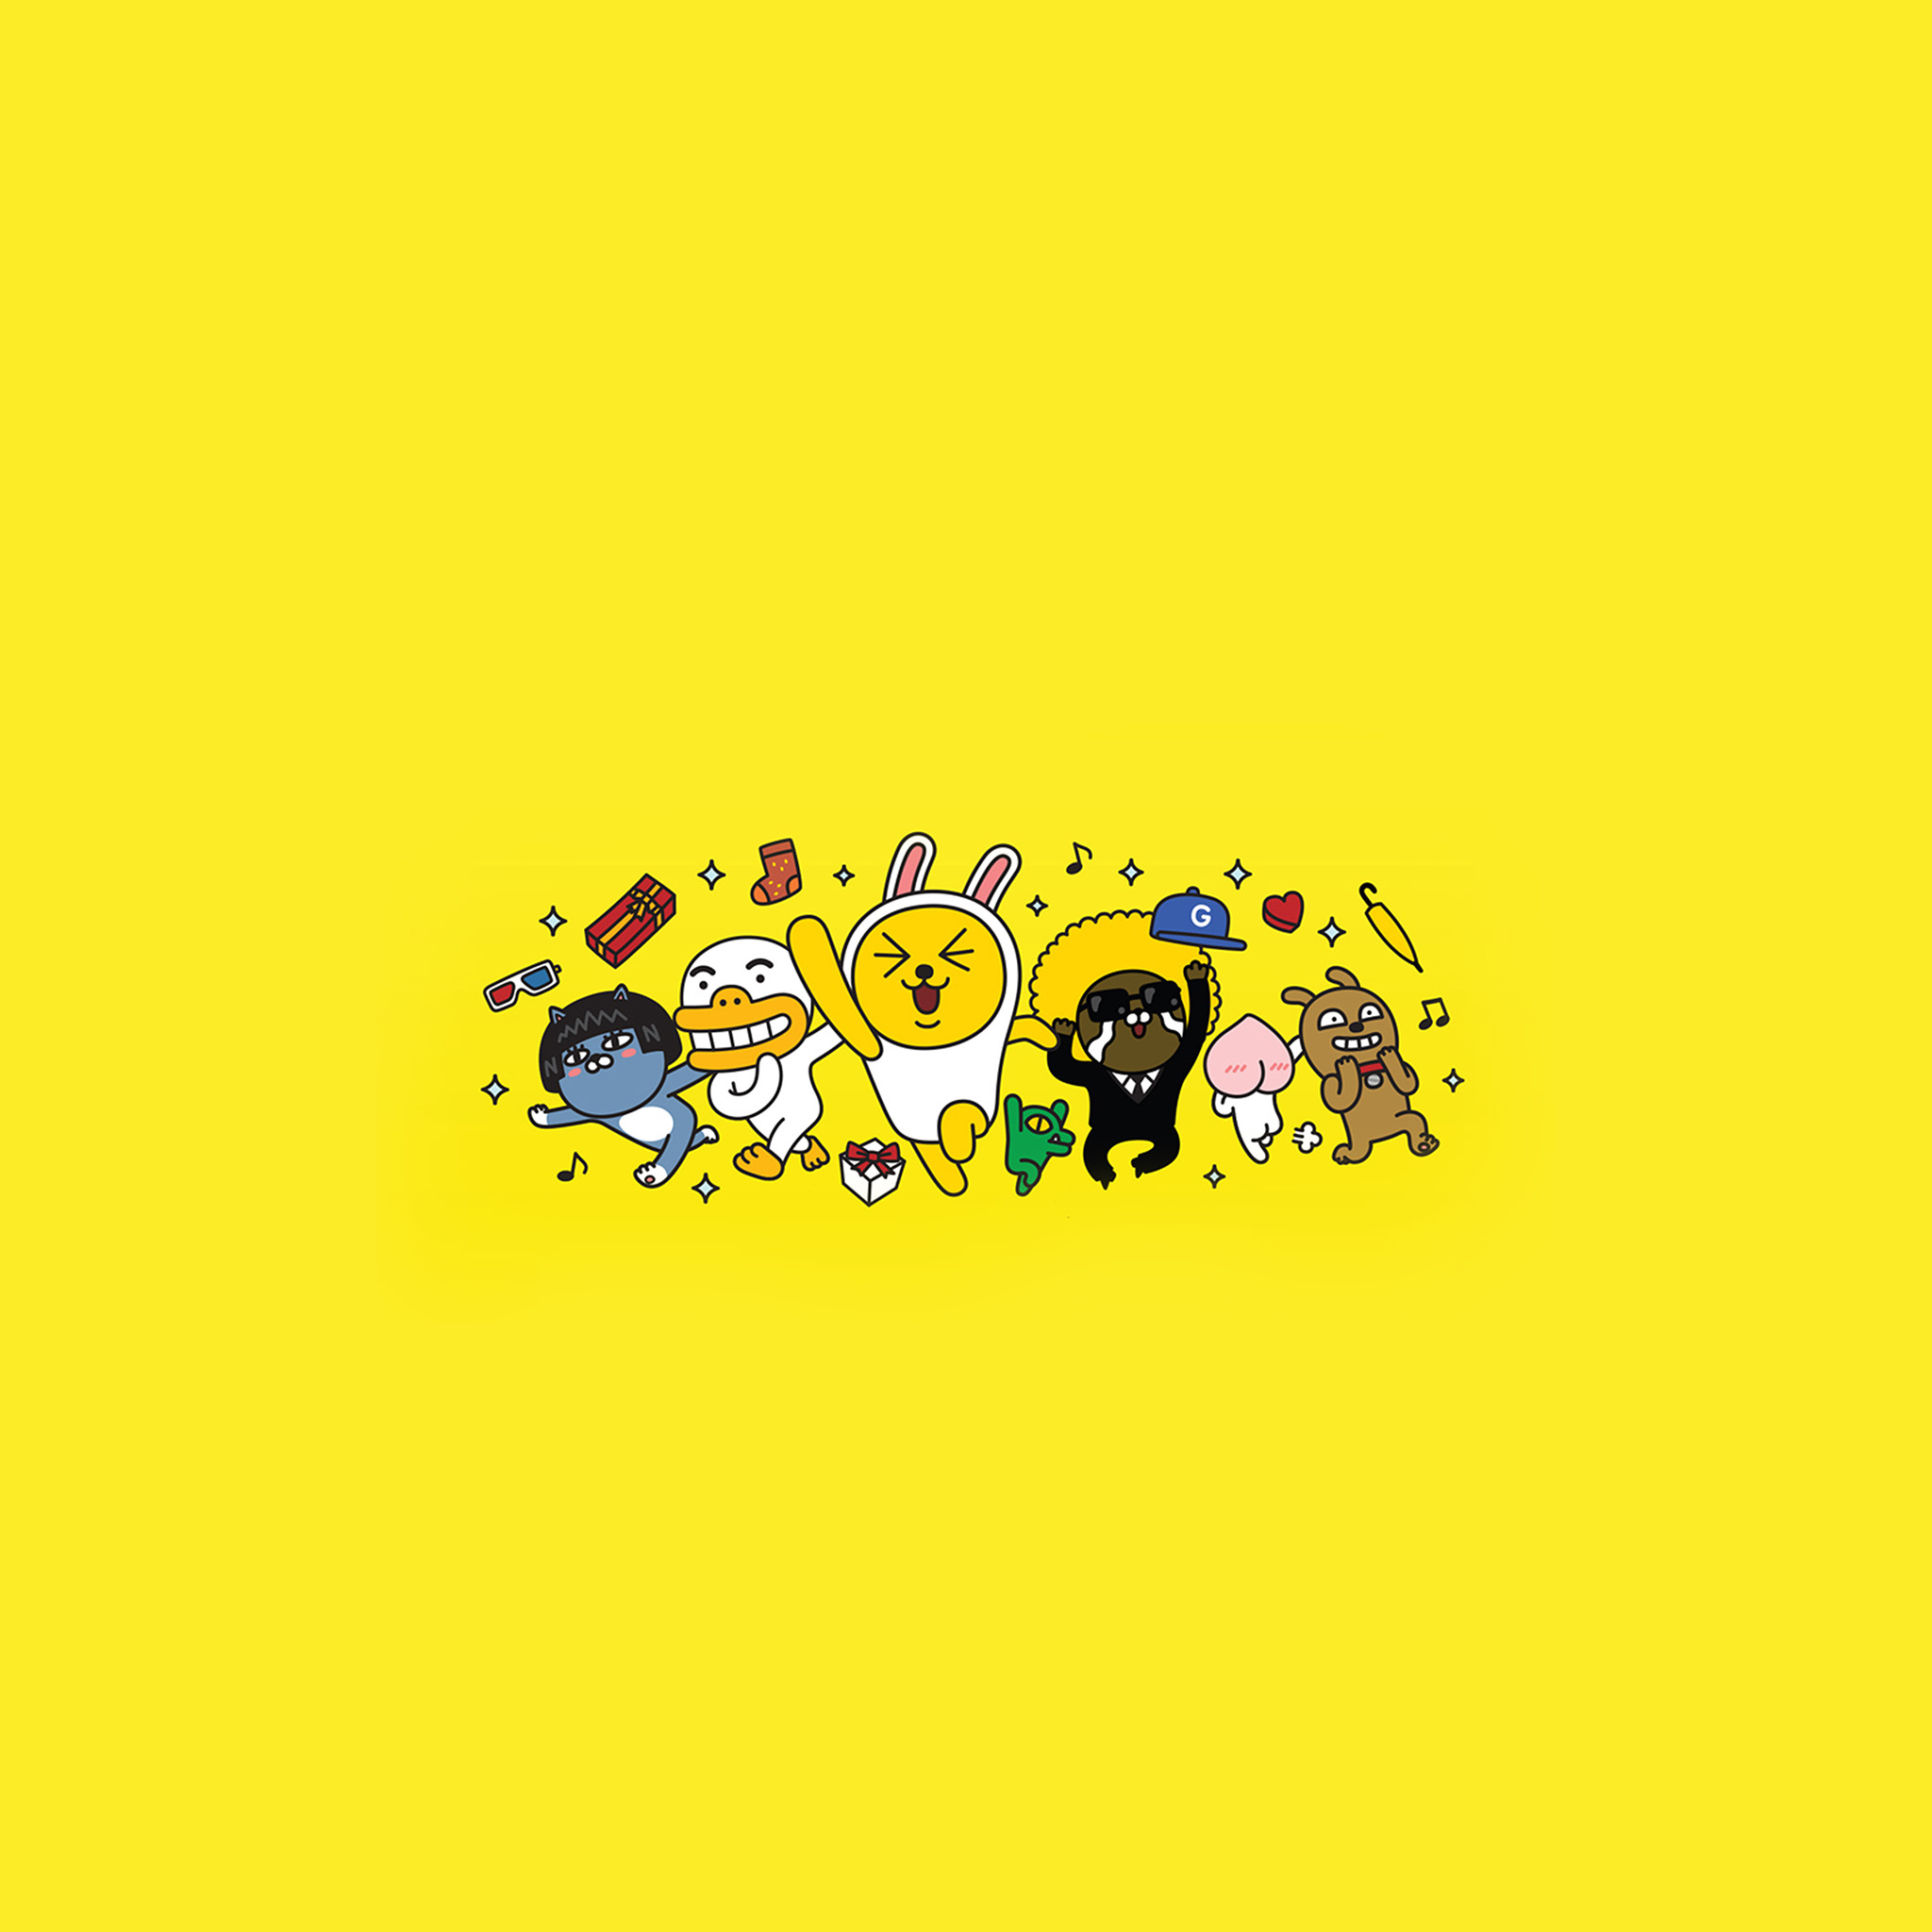 Iphone X Wallpaper For Note 8 Bc88 Kakao Yellow Friends Anime Art Illustration Wallpaper